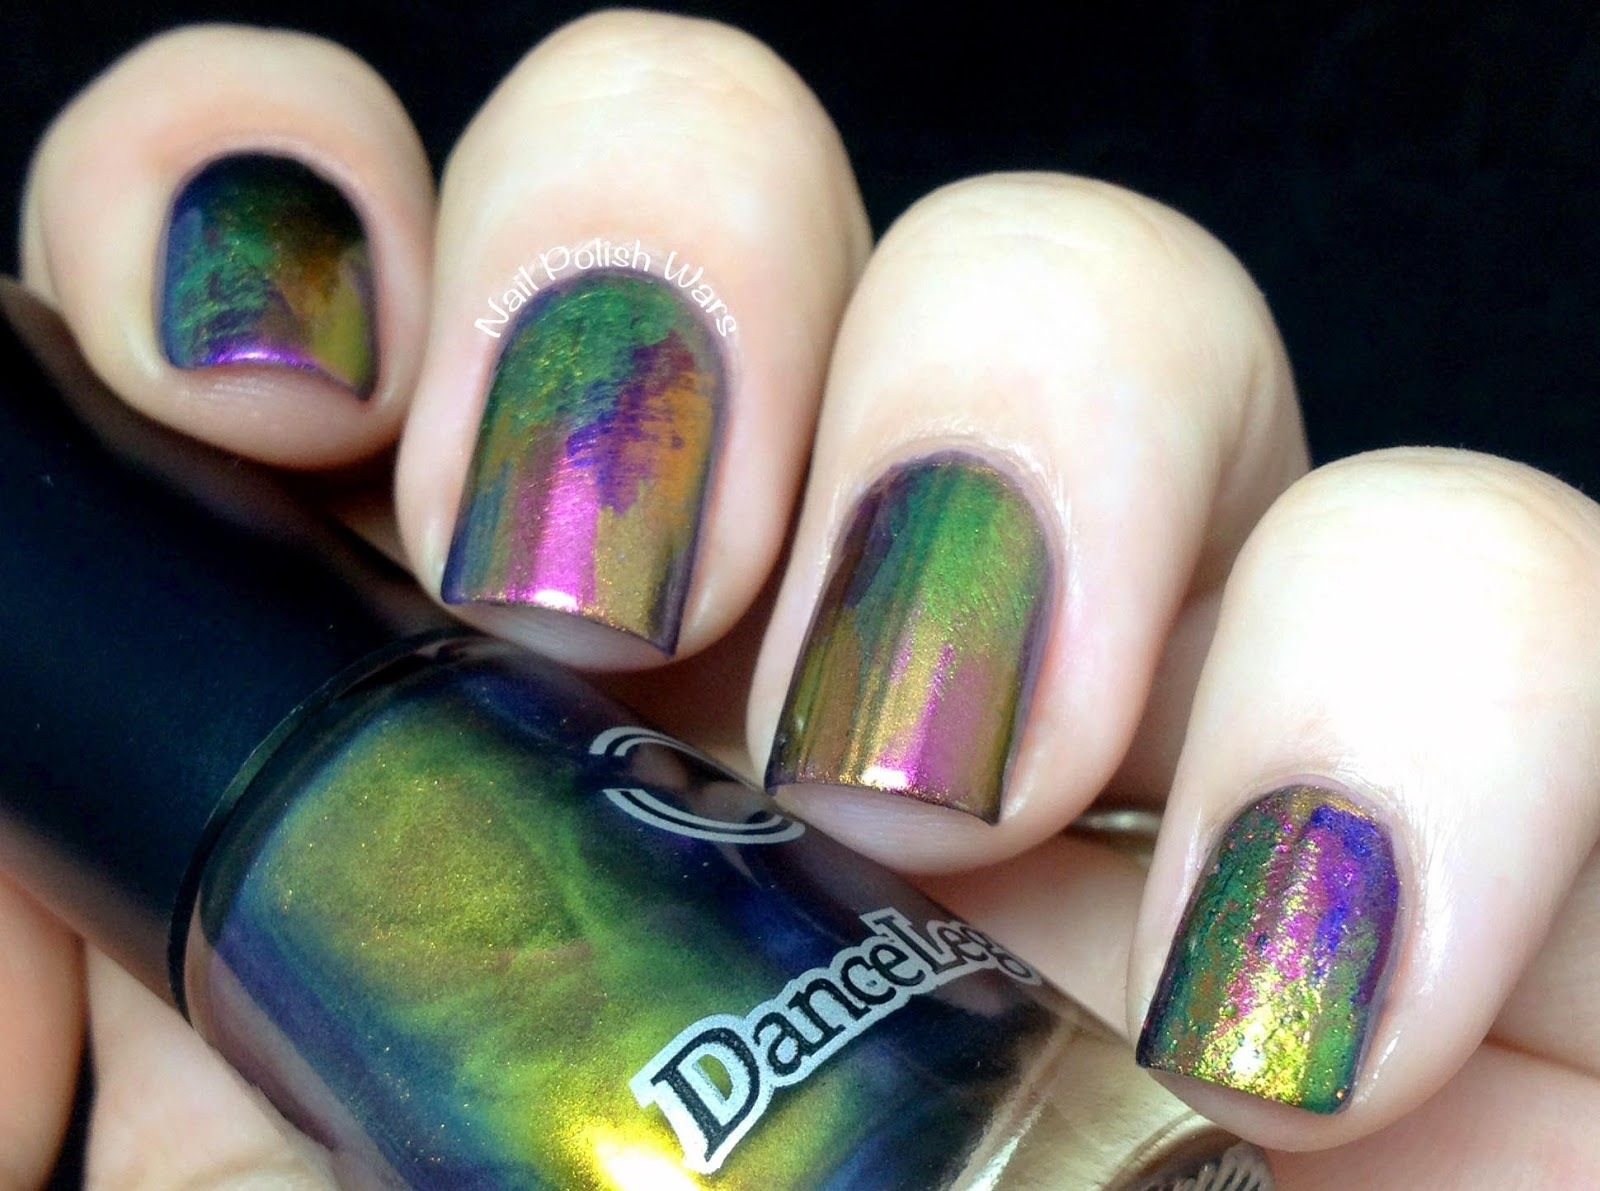 Oil Slick ! | Nail Polish Wars | nails | Pinterest | Oil, Makeup and ...